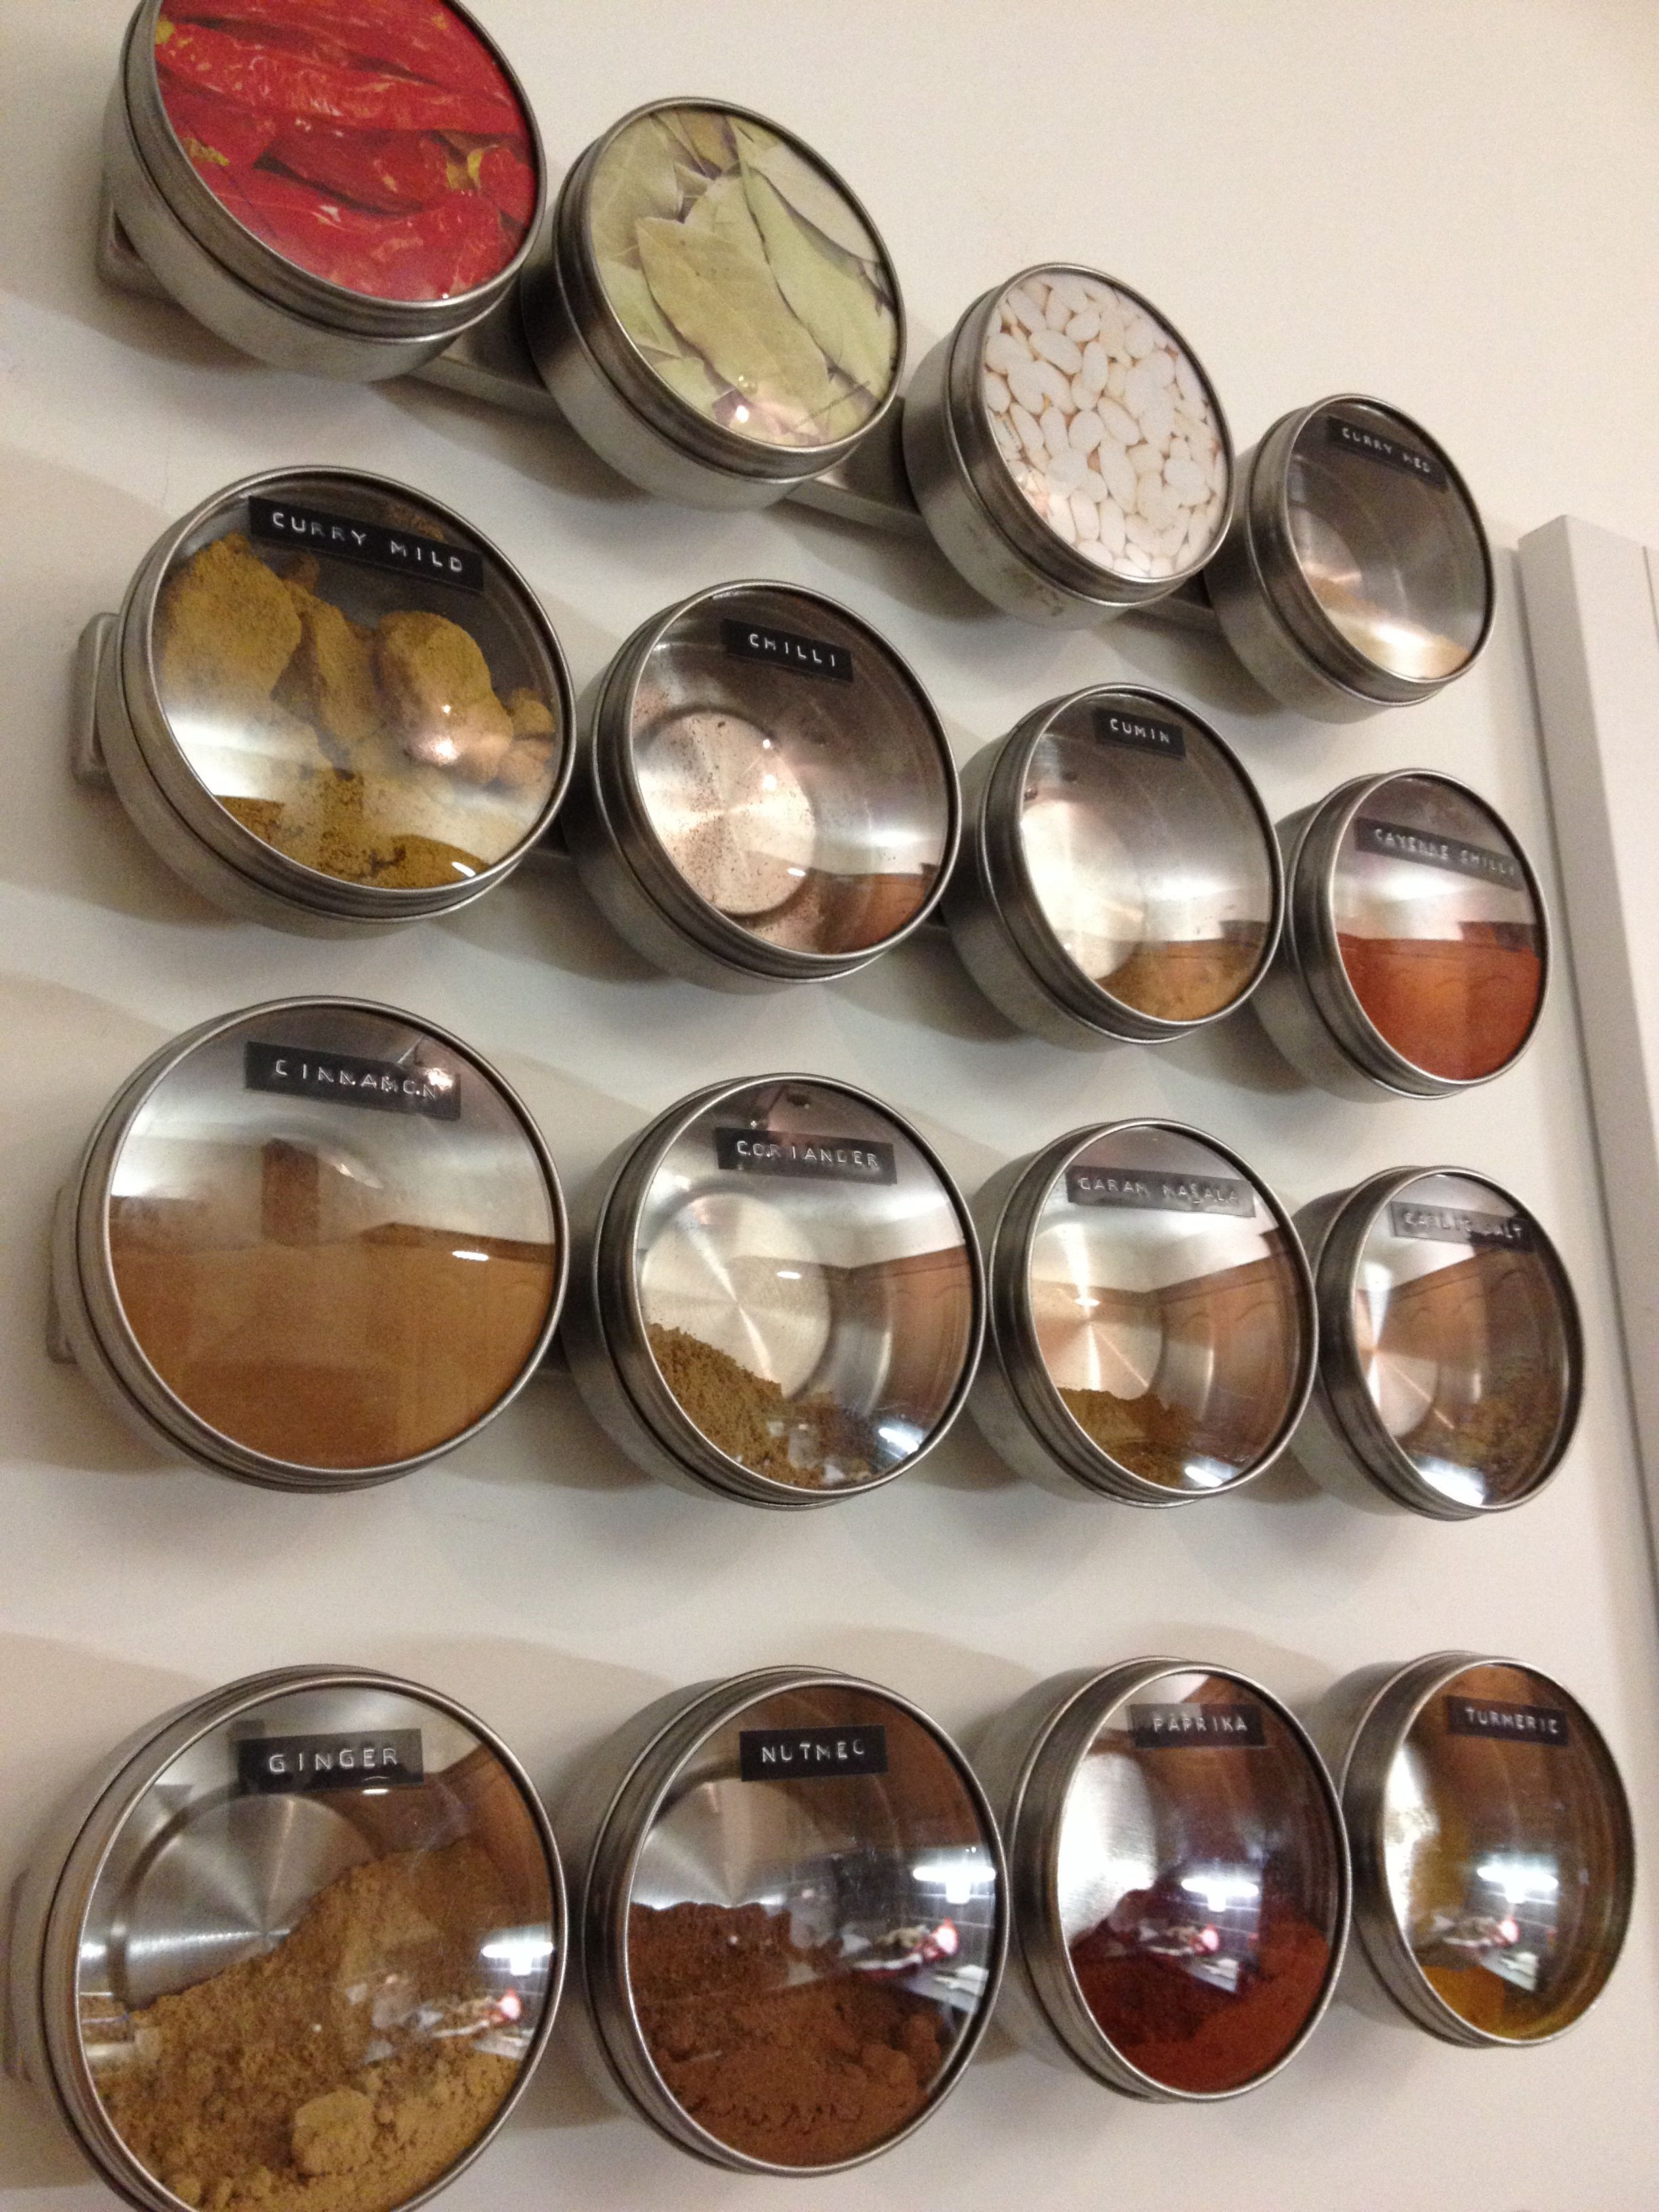 Ikea magnetic spice containers grundtal range